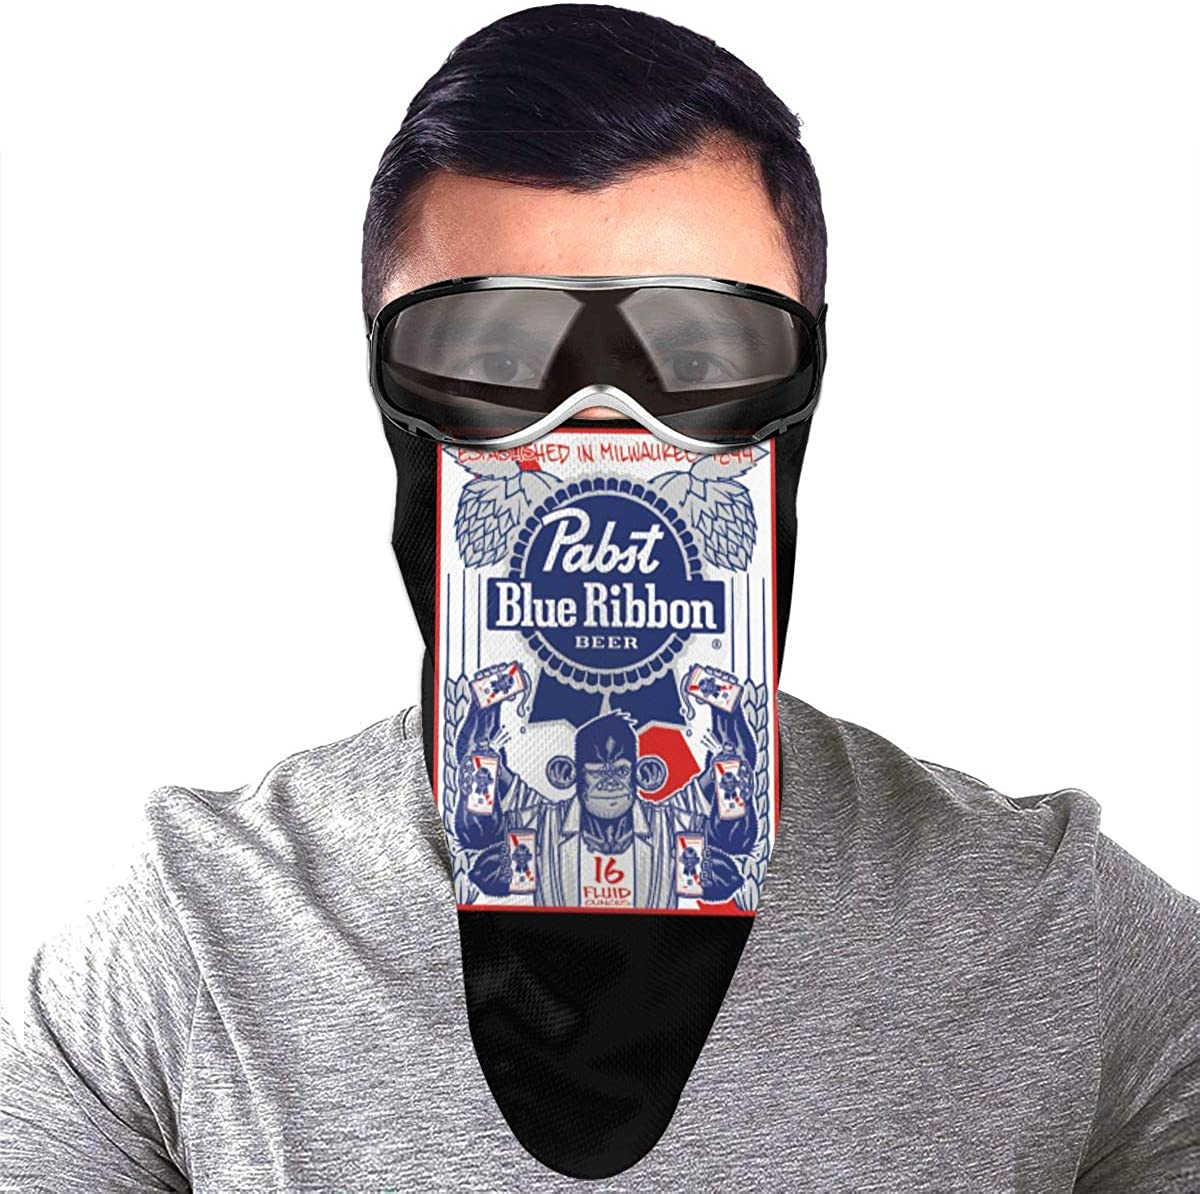 Triangle Face Mask With Pocket Pabst Blue Ribbon Beer Protection Mouth Cover Neck Bandanas Scarf For Washable Outdoor Dust Sun Resitant Men Women